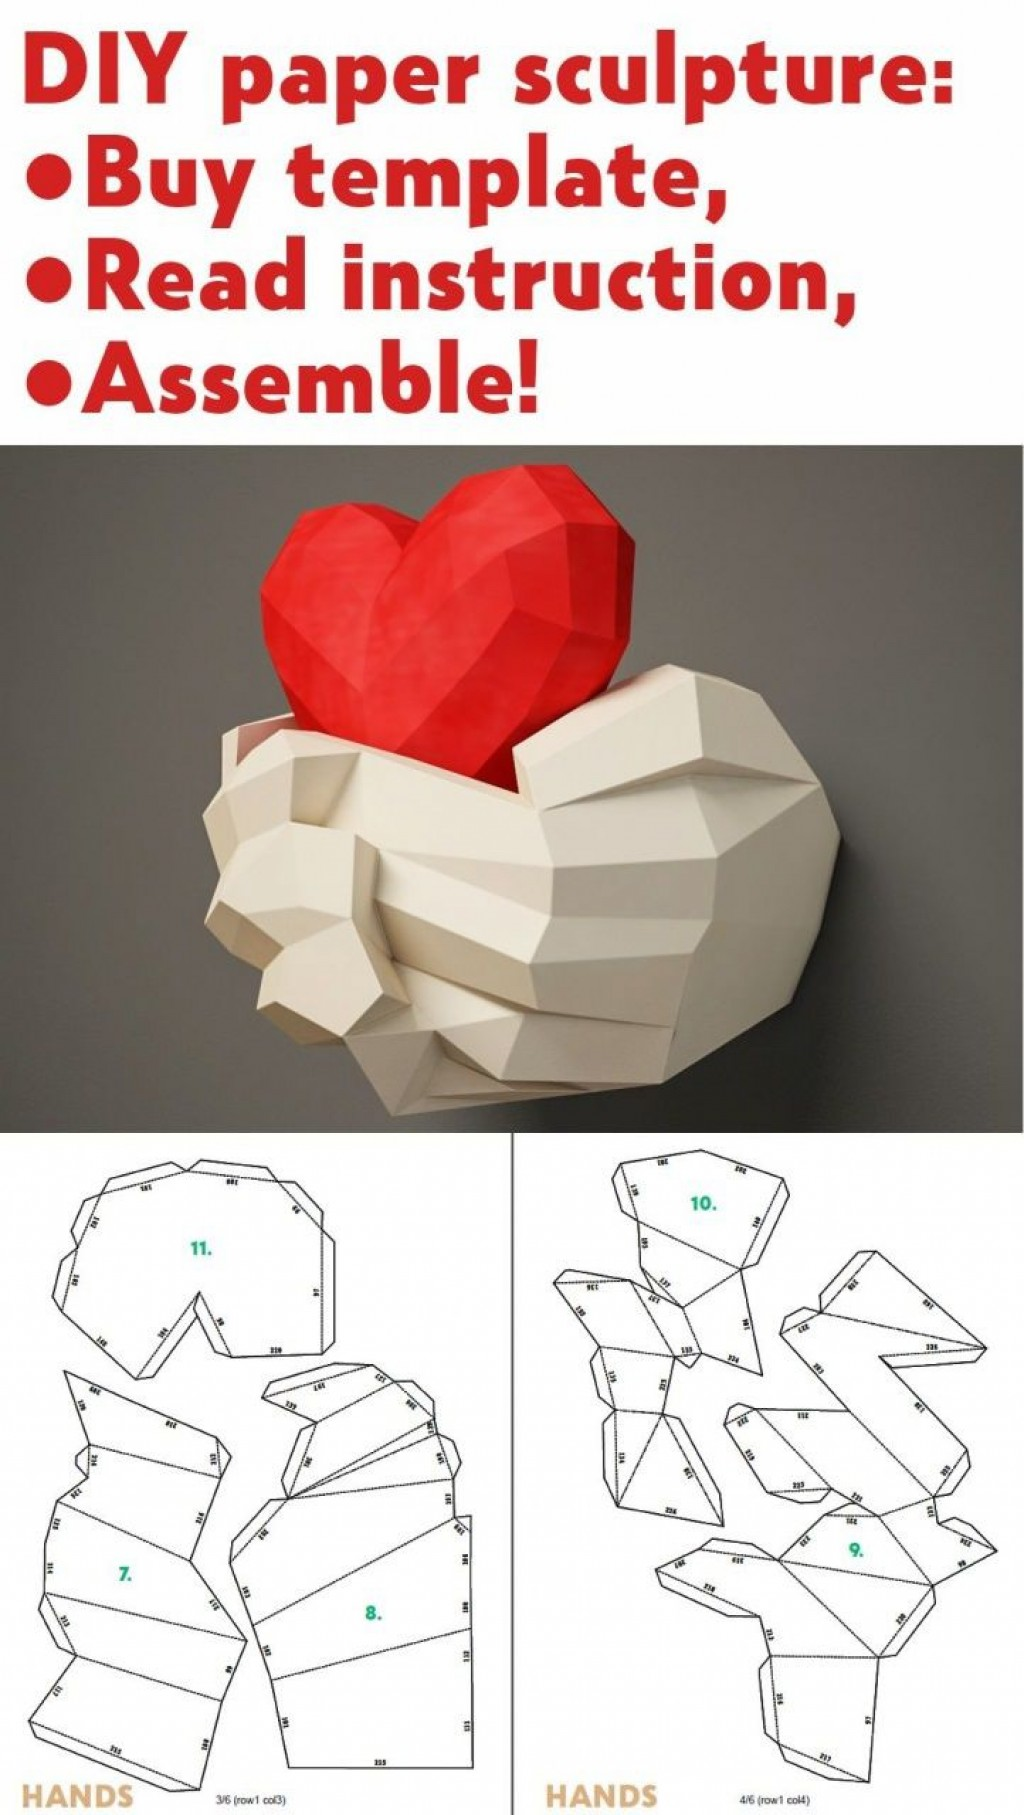 002 Awesome 3d Paper Art Template Sample  Templates PdfLarge